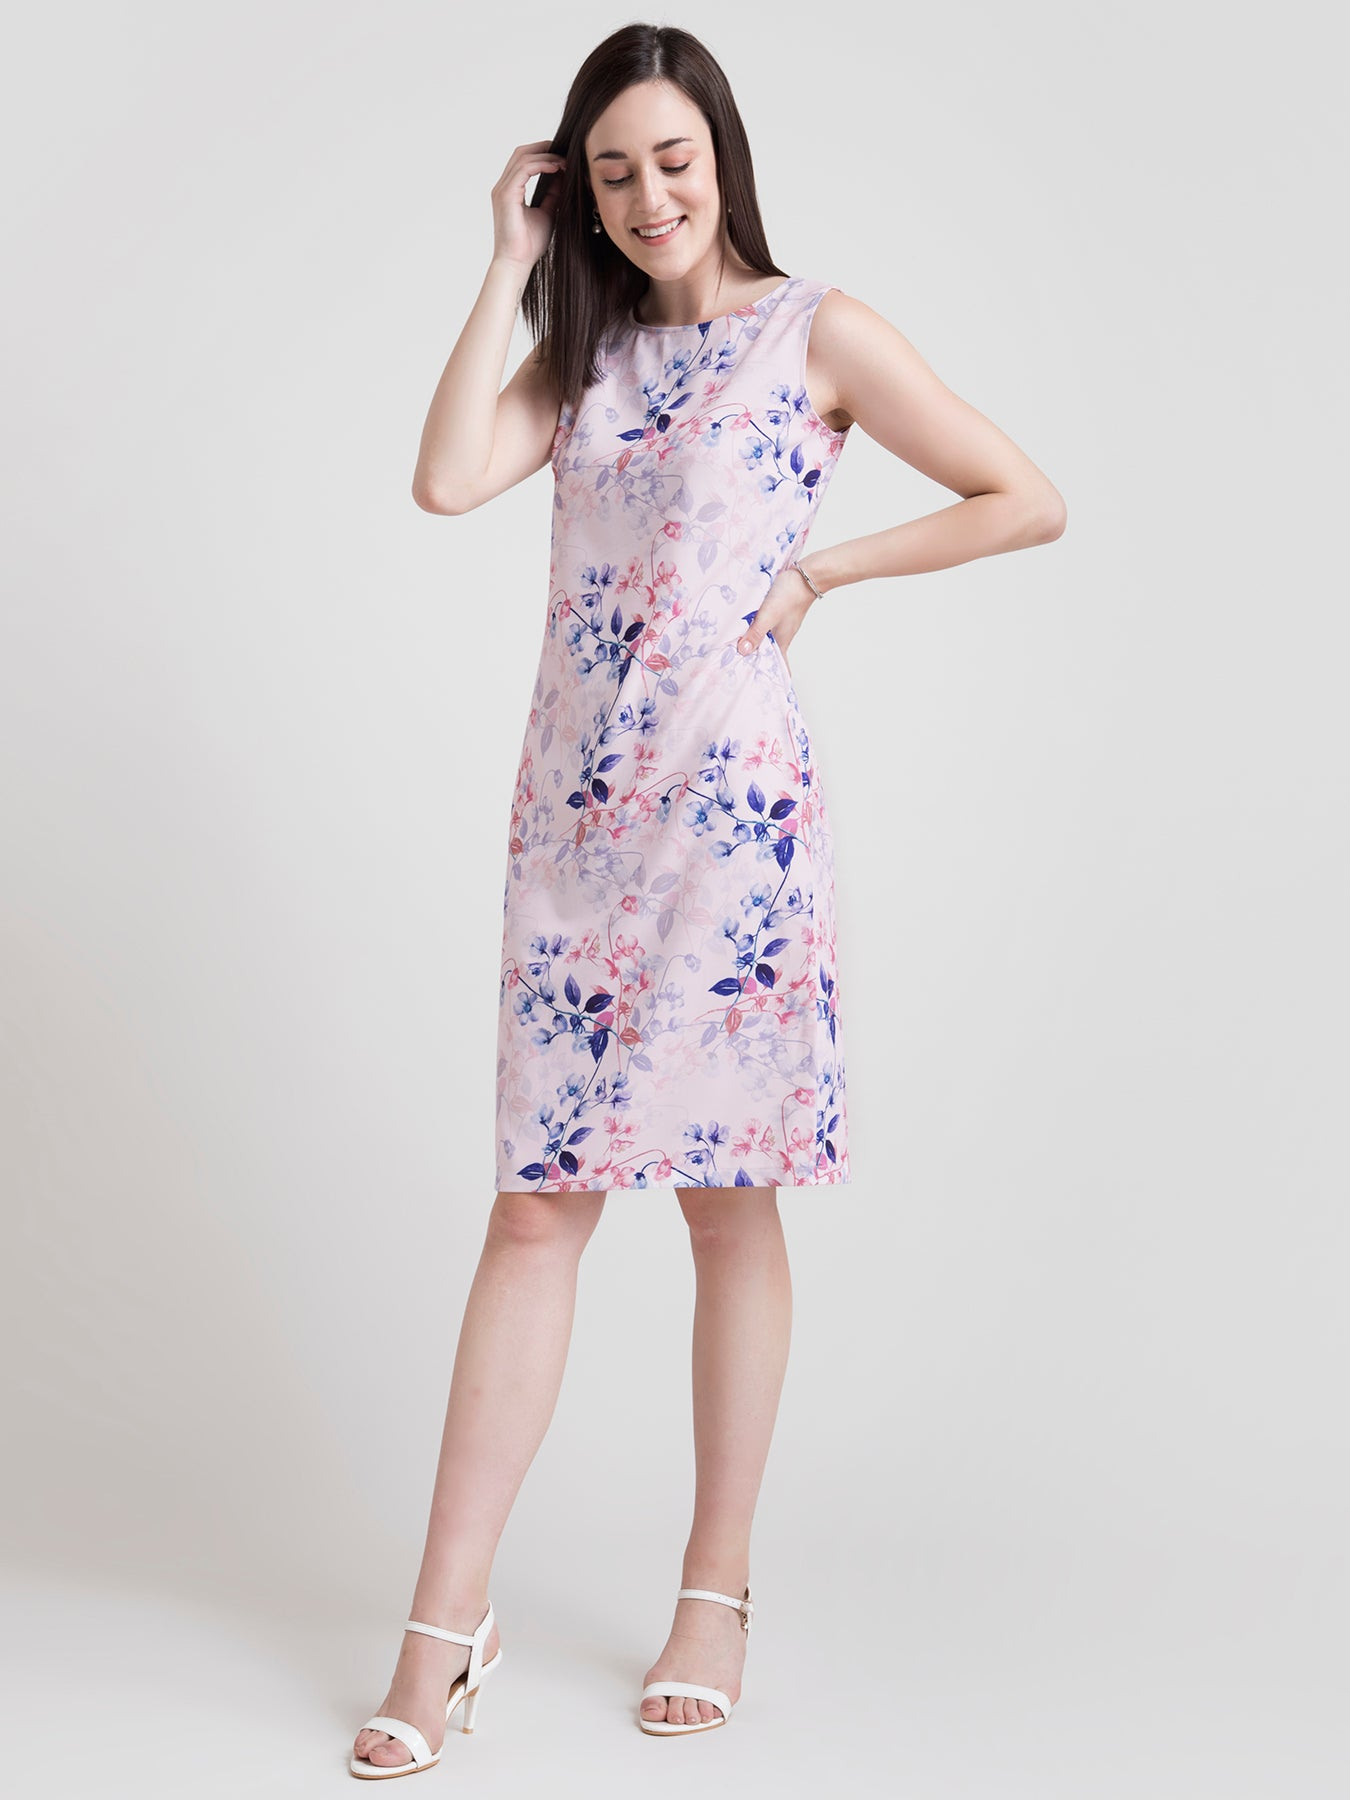 Boat Neck Ditsy Floral Sheath Dress - Pink and Blue